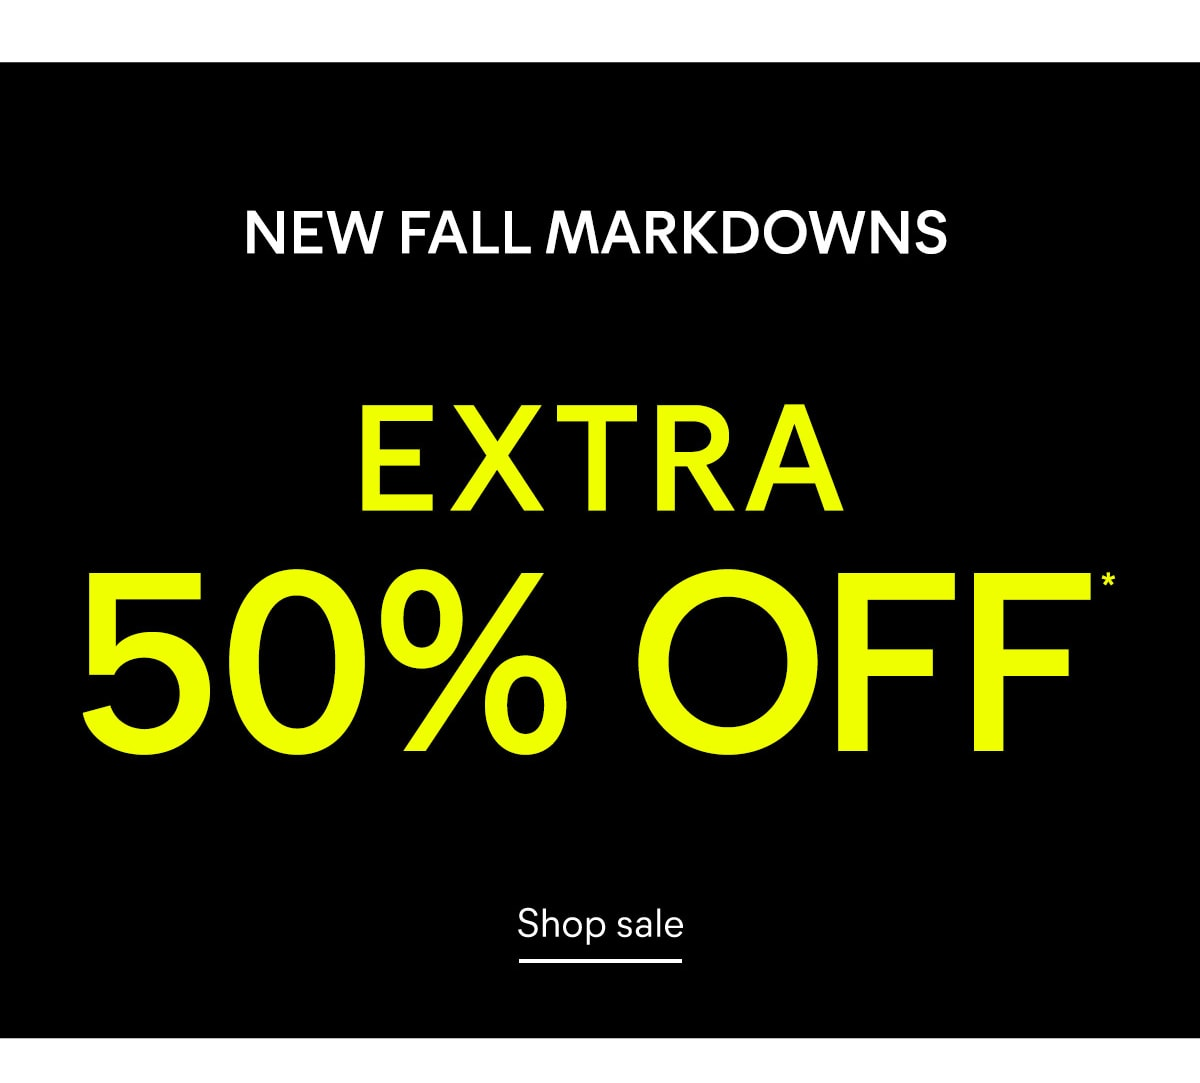 NEW FALL MARKDOWNS Extra 50% OFF